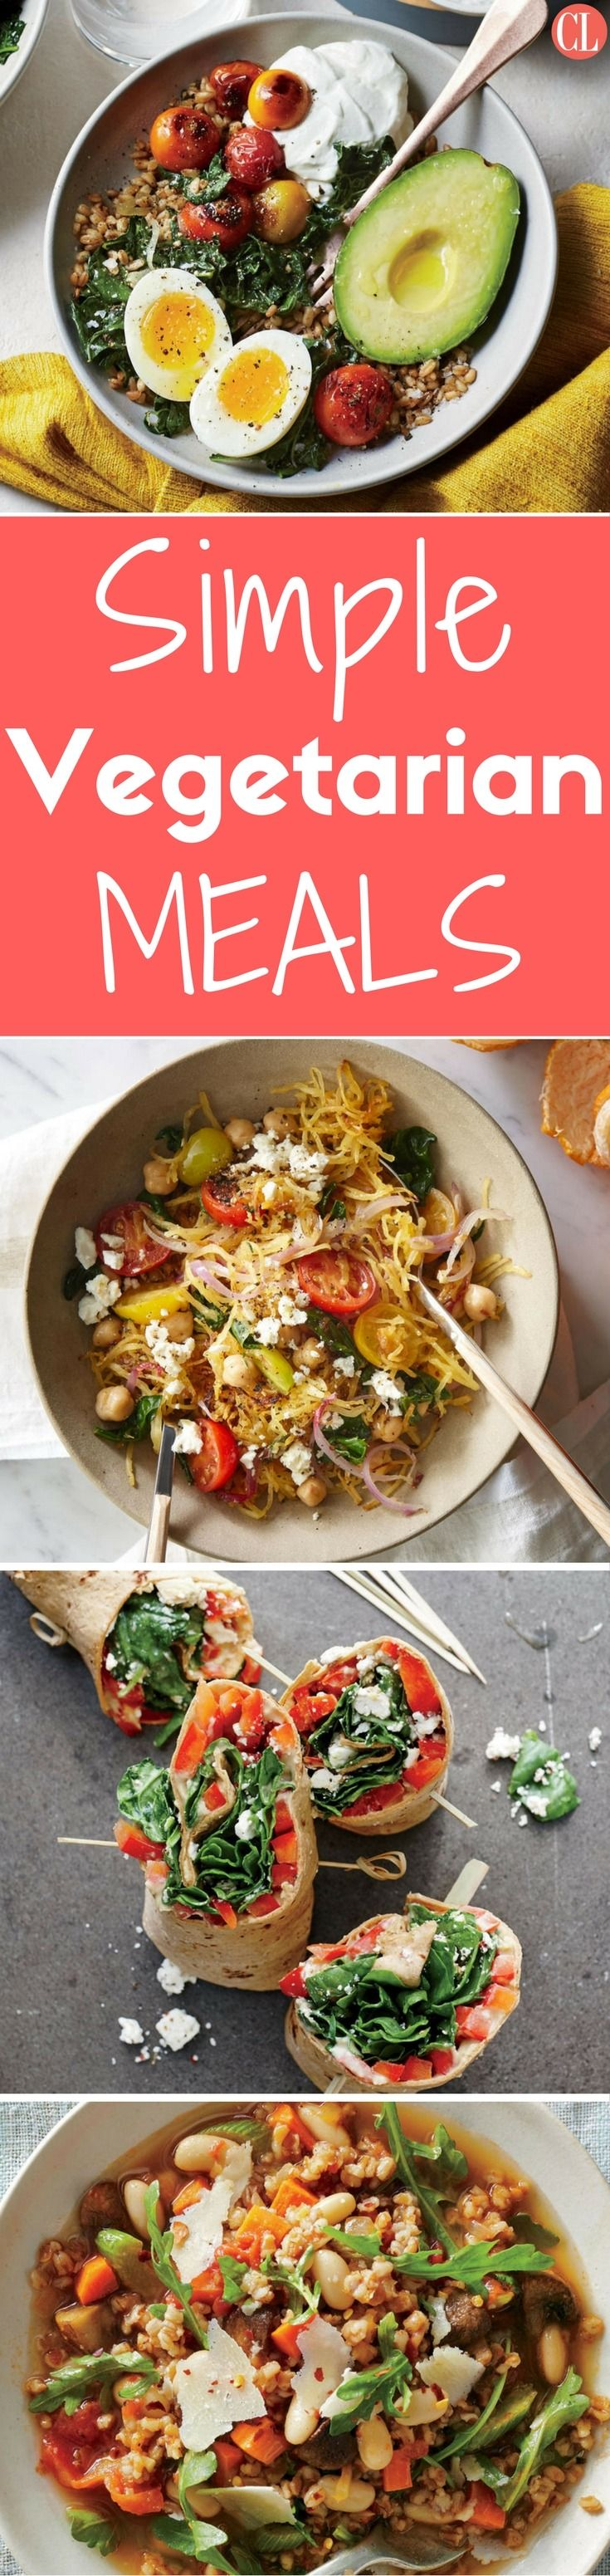 40 Easy Vegetarian Recipes for Busy Weeknights - Cooking Light